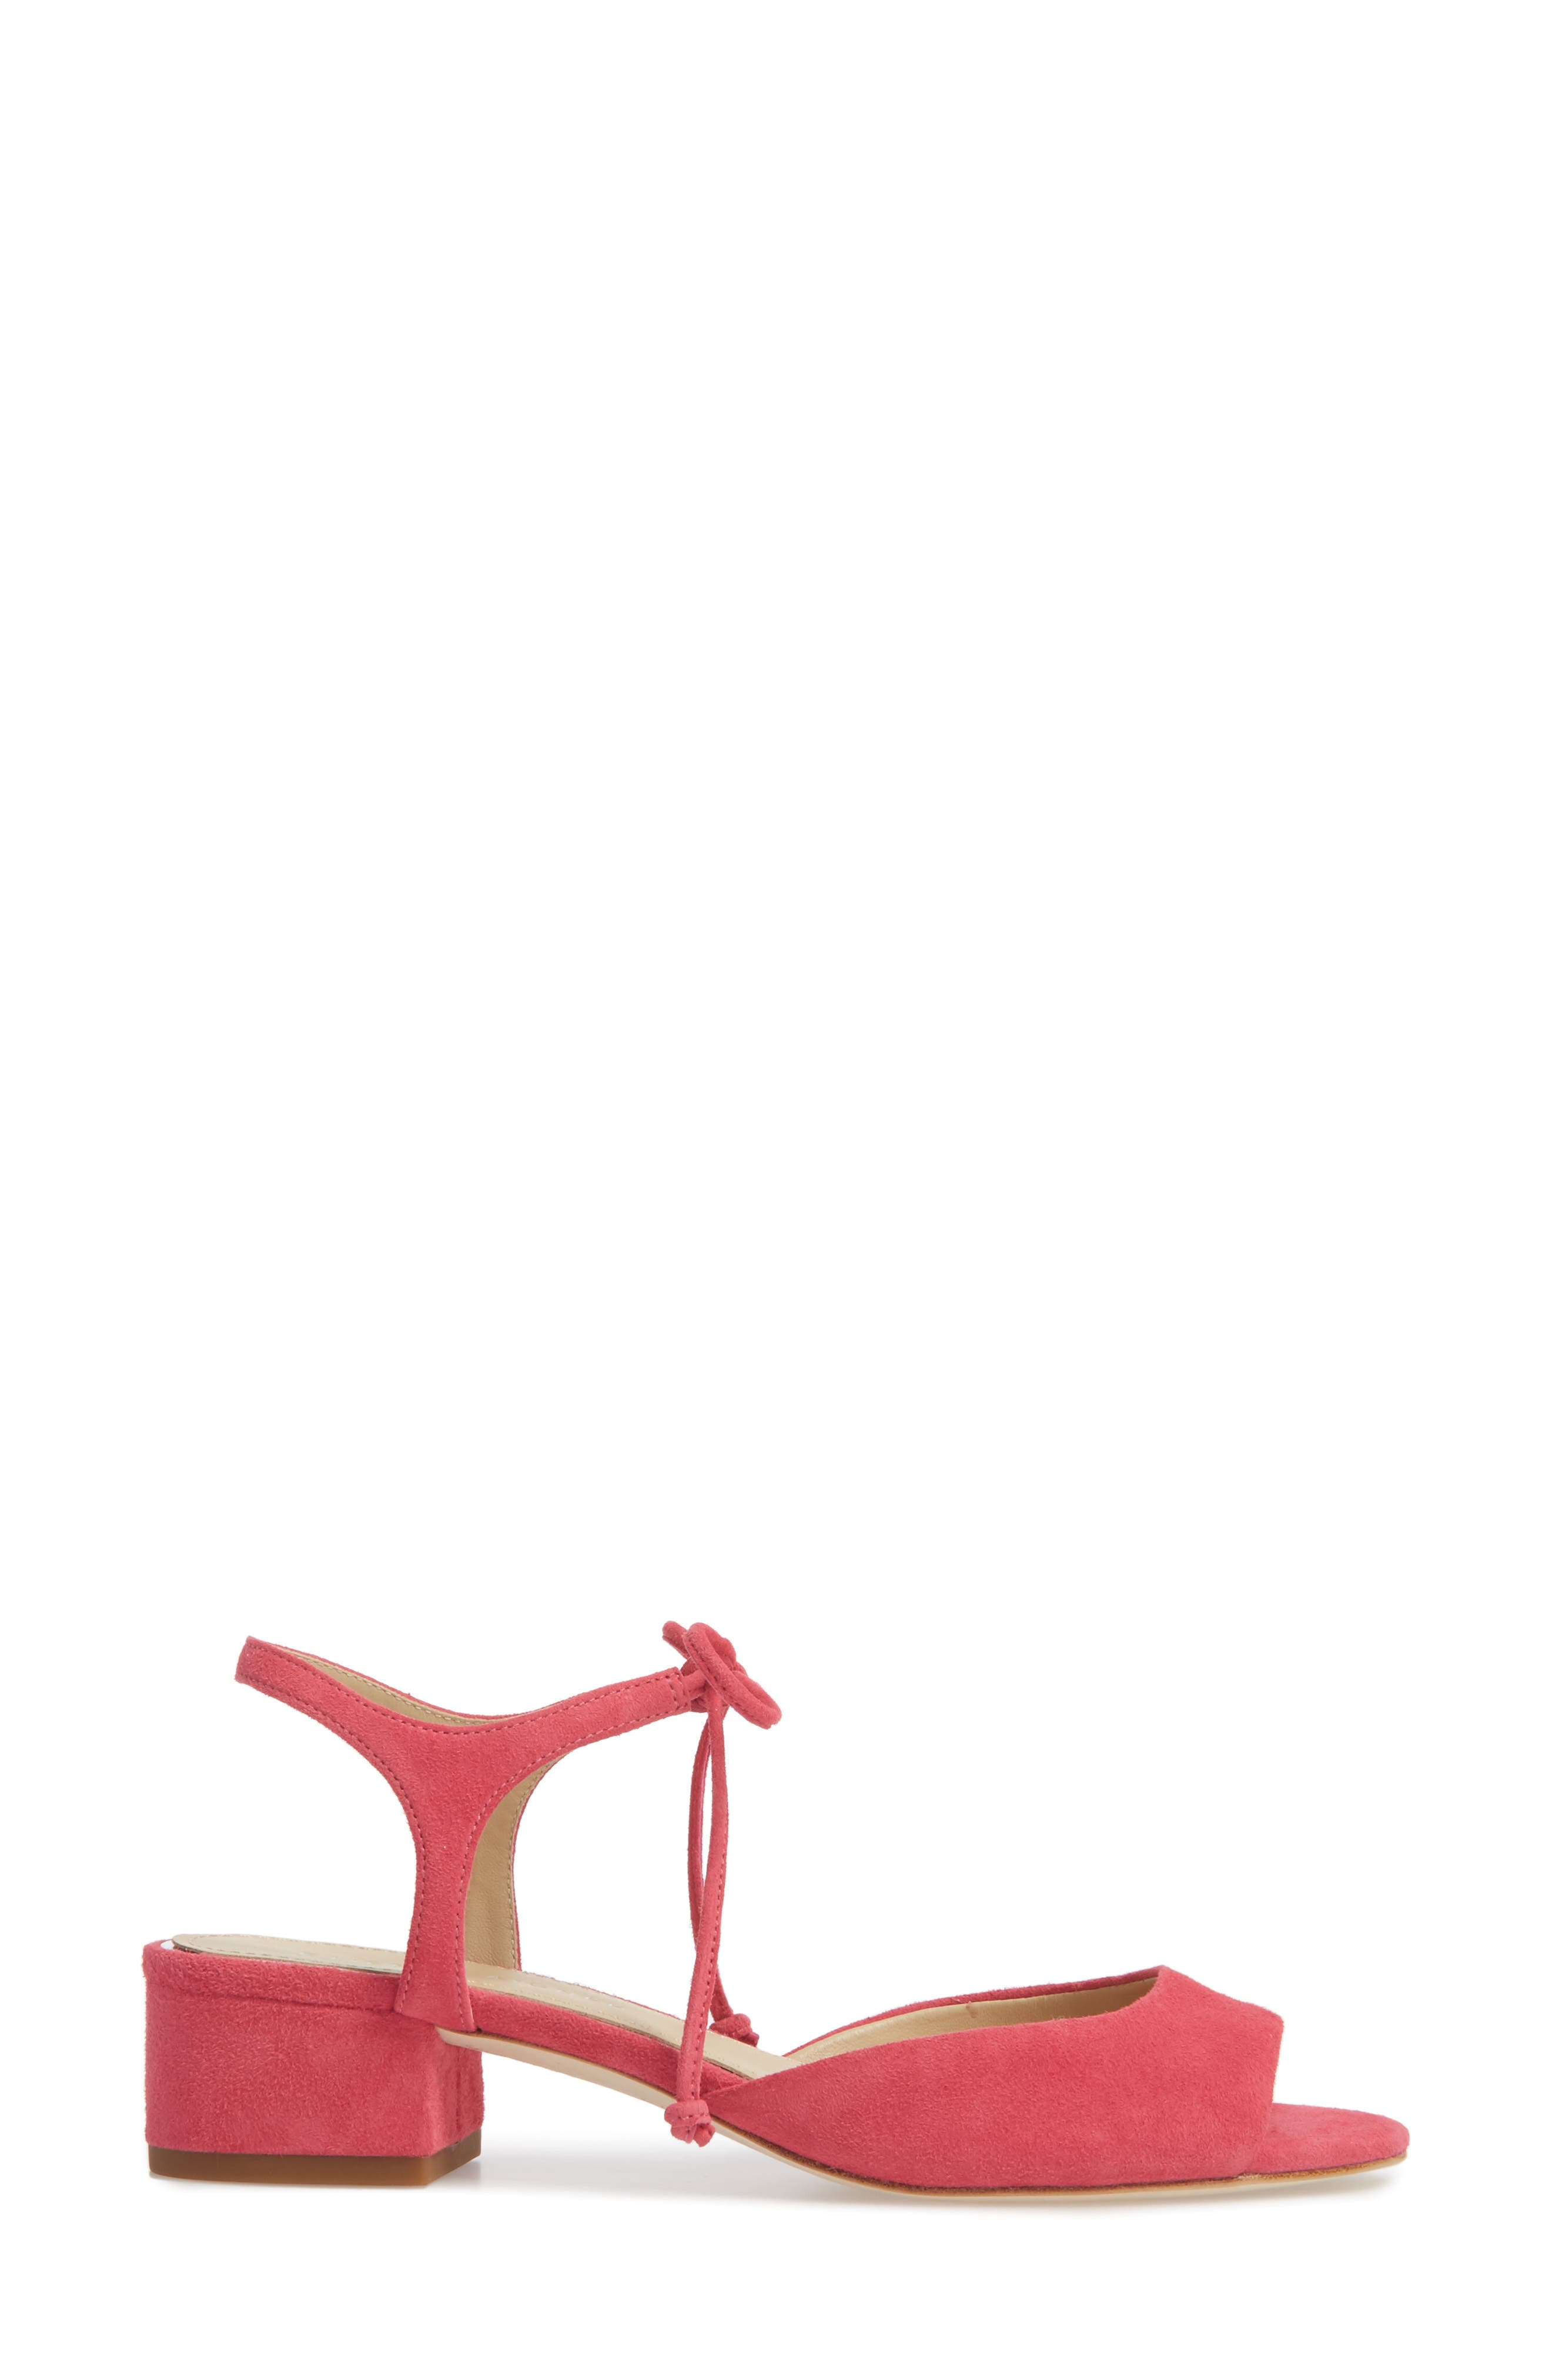 Belize Strappy Sandal,                             Alternate thumbnail 3, color,                             Peony Suede